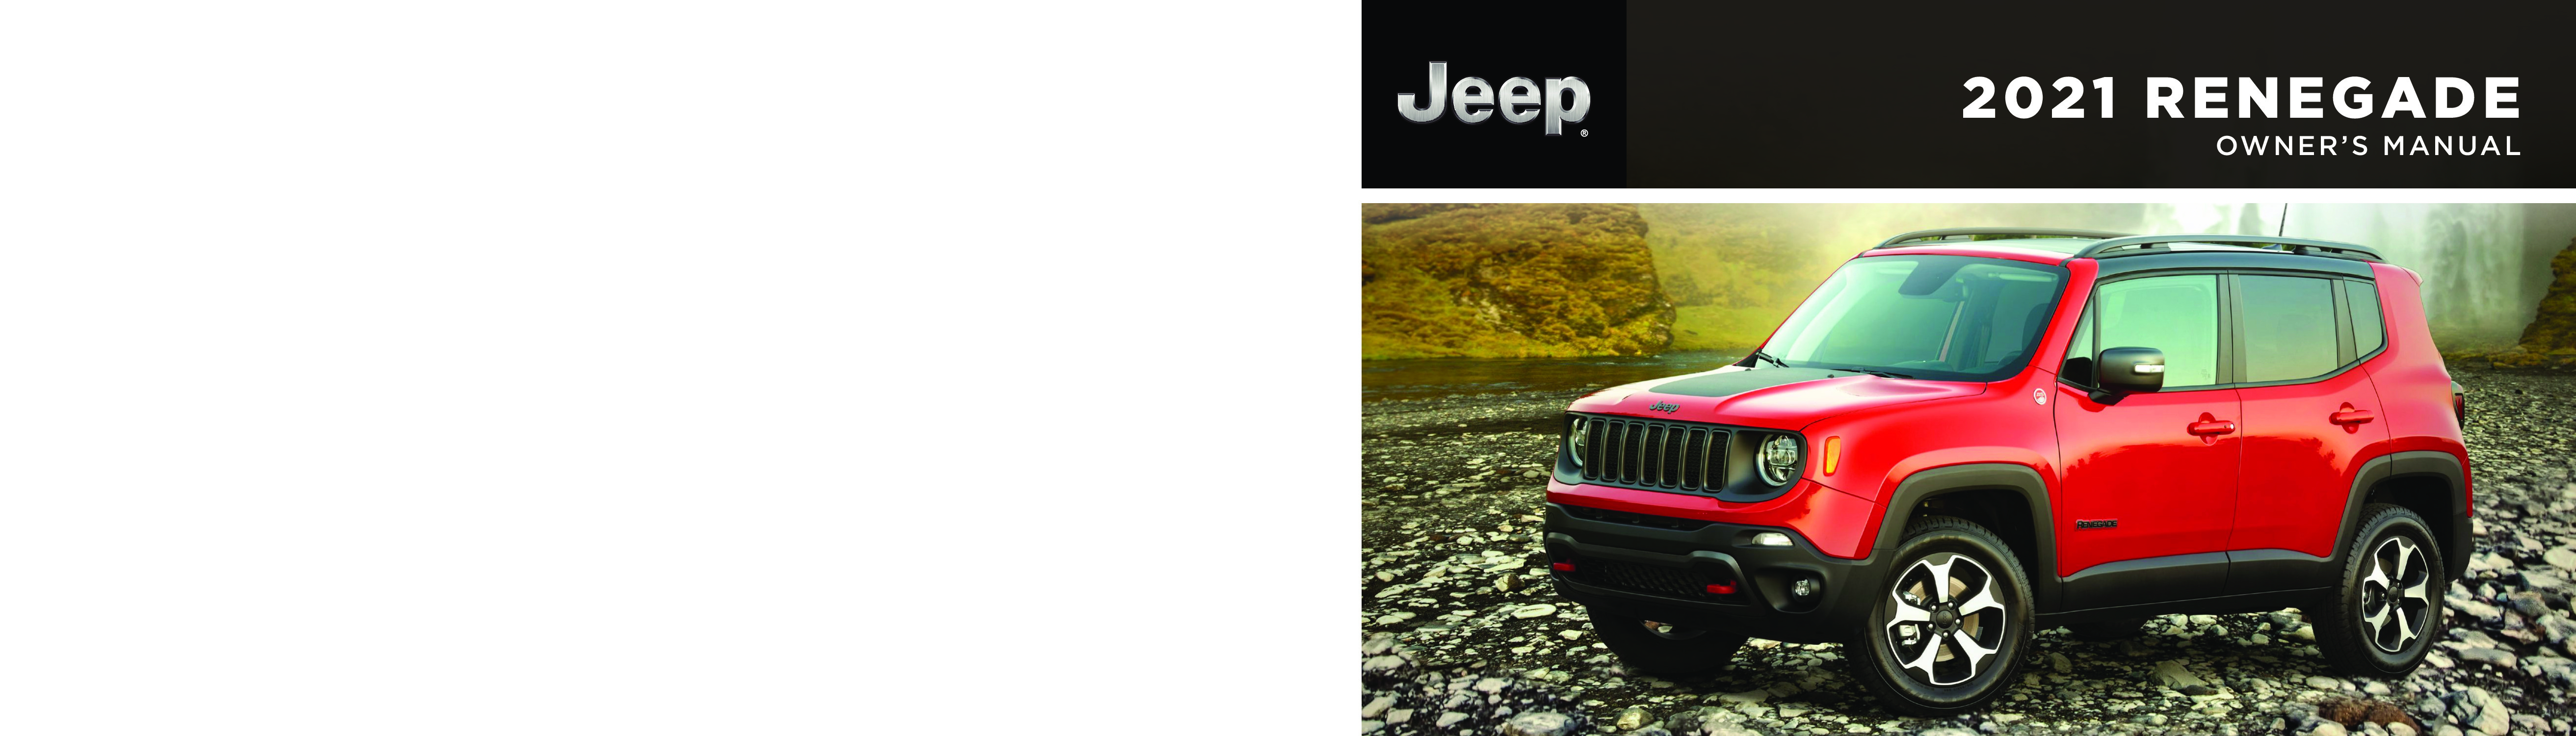 2021 Jeep Renegade owners manual